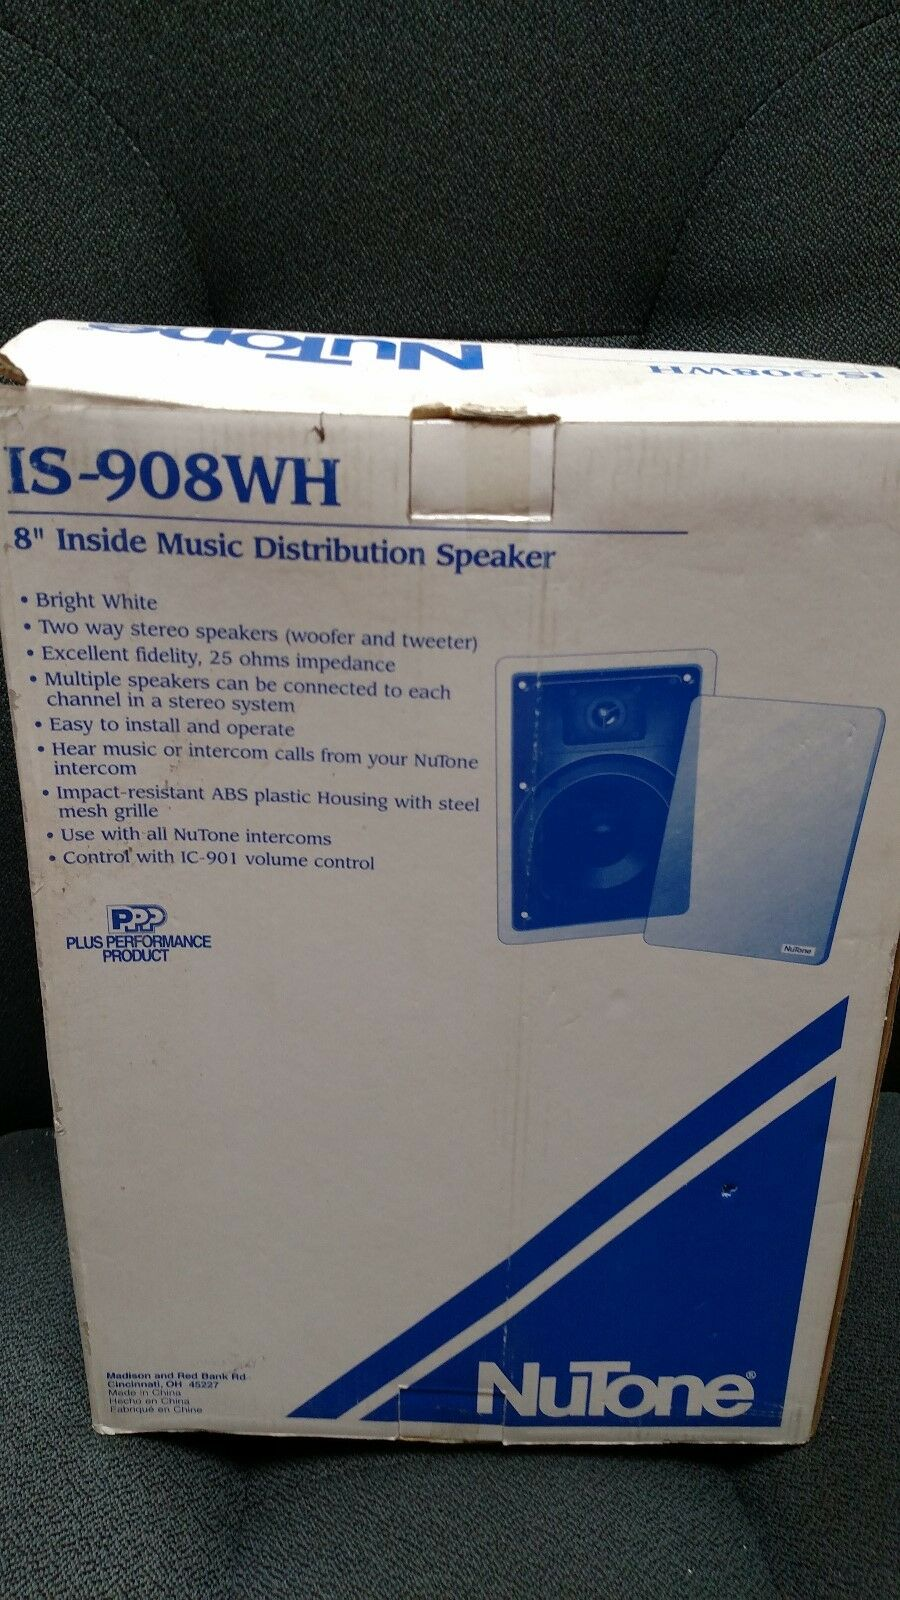 "*NEW* NuTone IS-908WH 8"" Inside Music Distribution Speaker For Intercom"